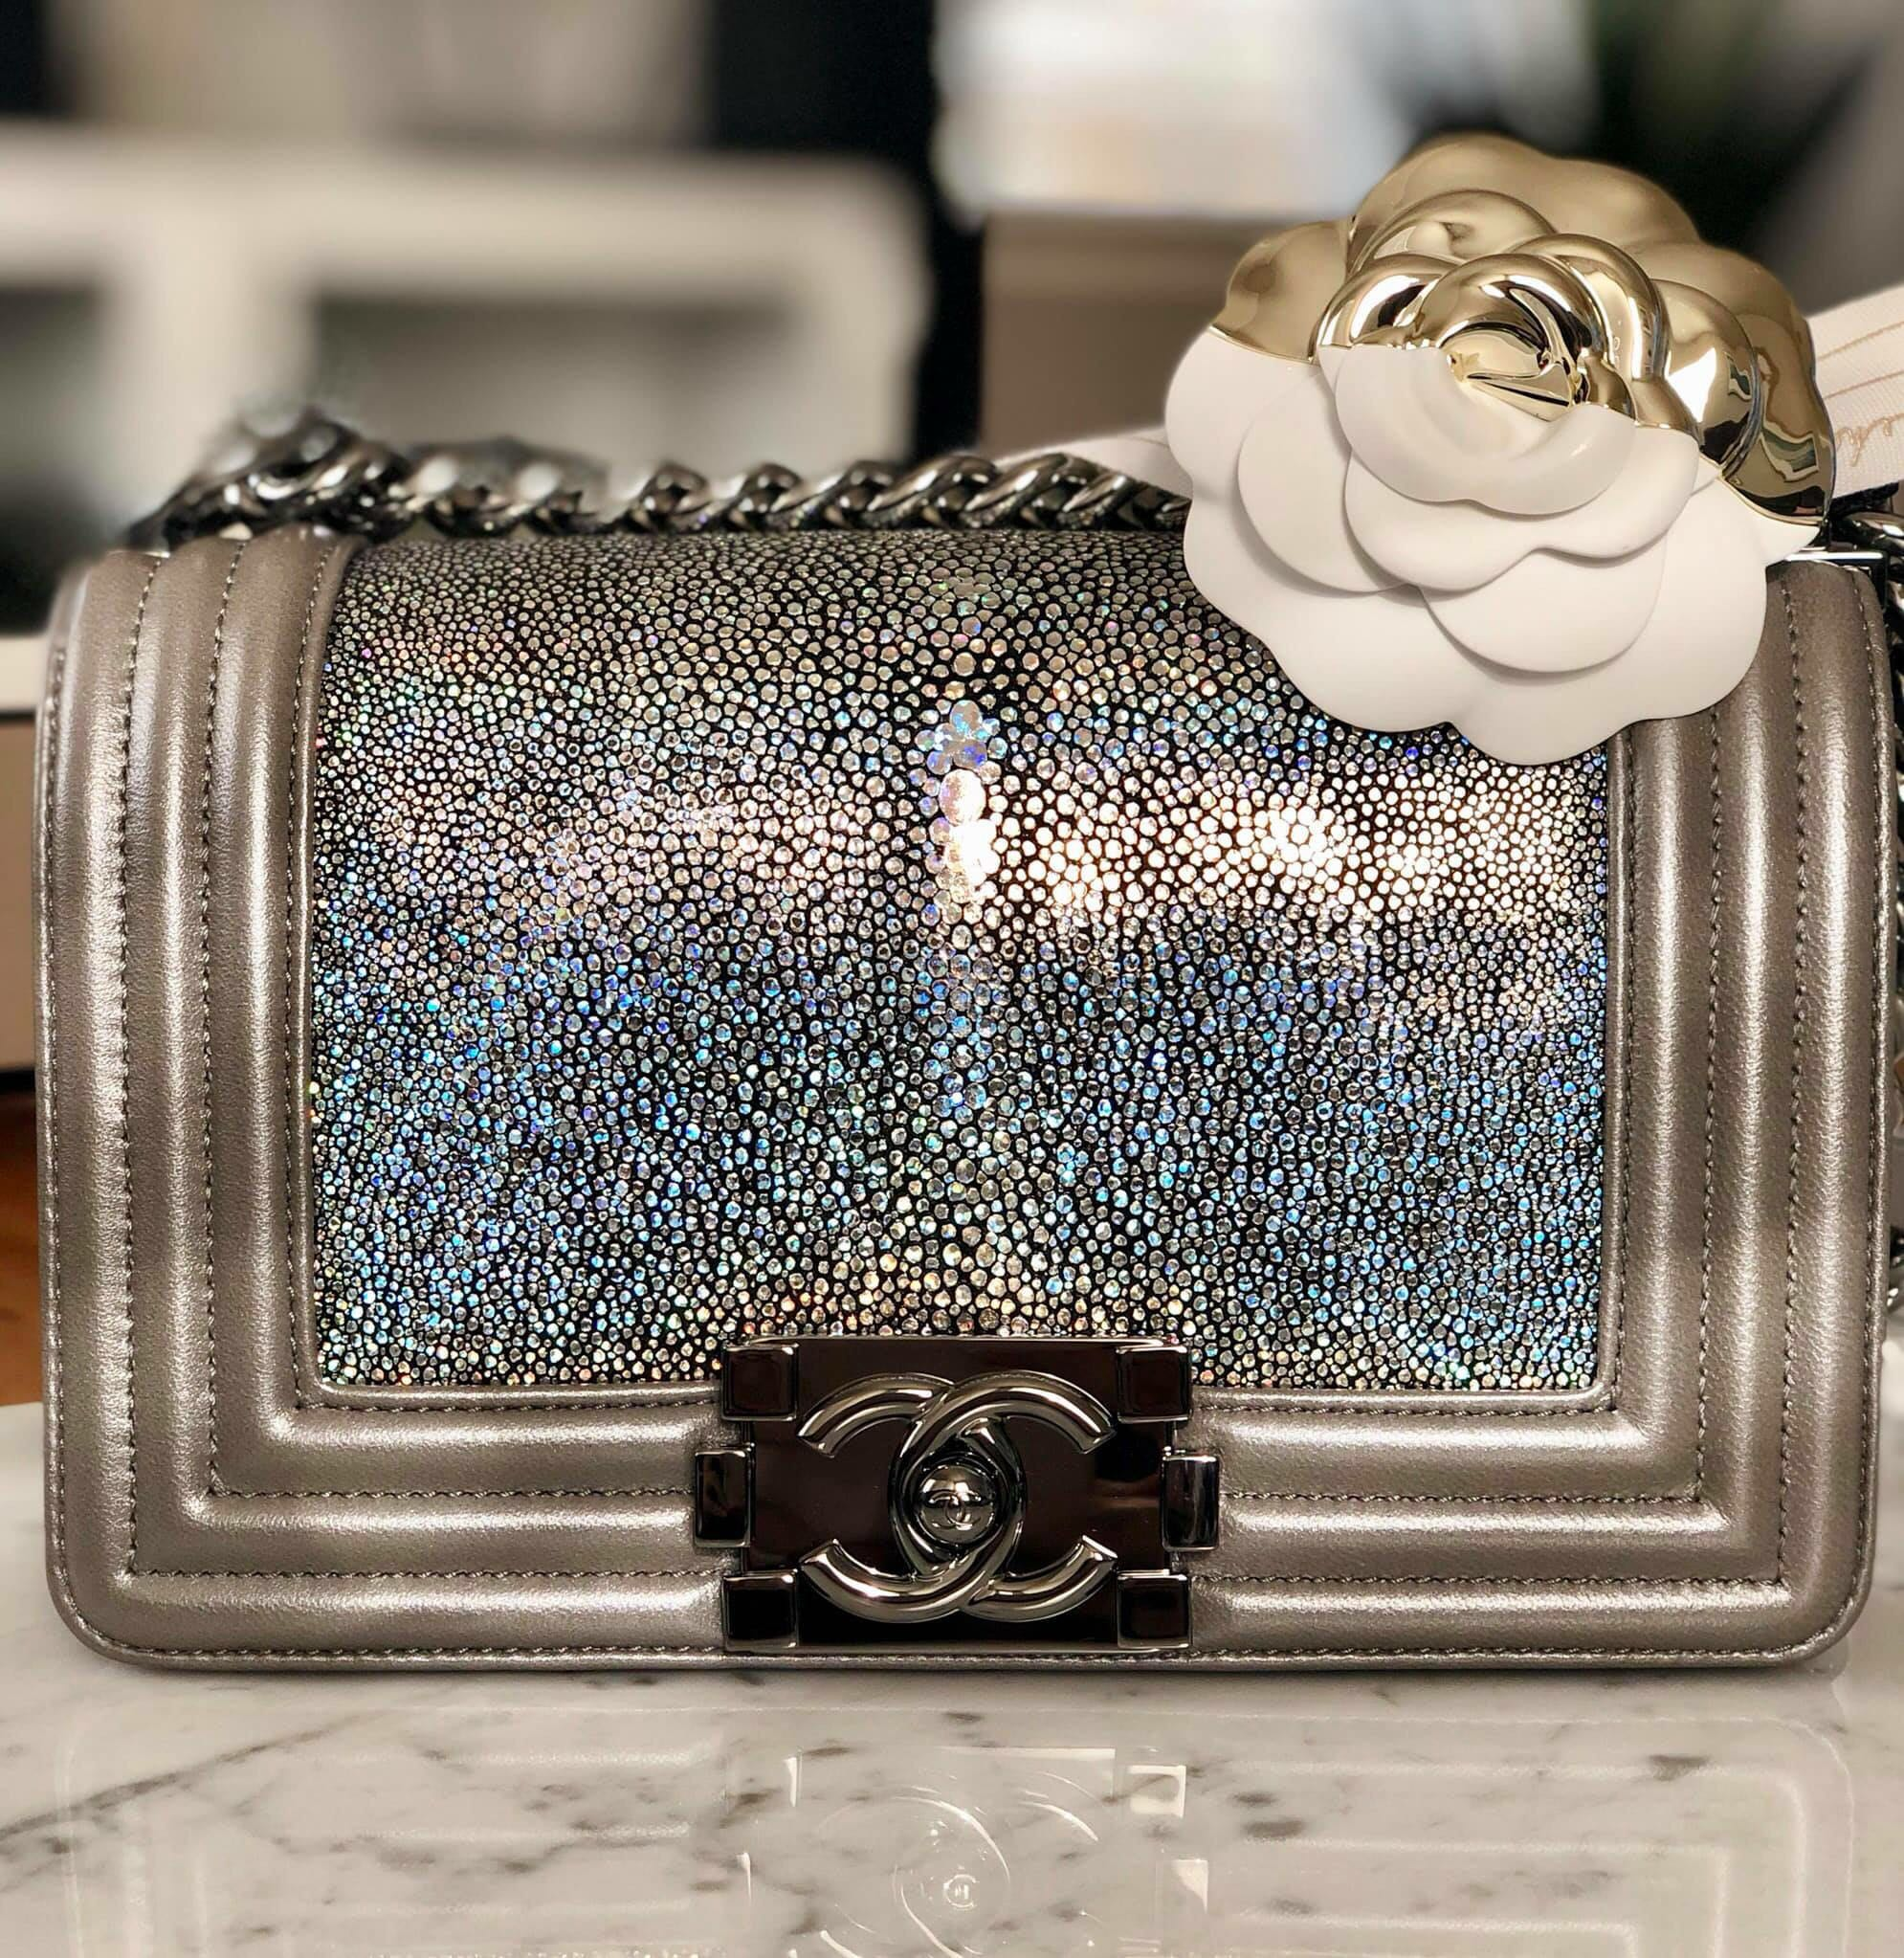 ede5987a8ce1 Chanel le boy small size stingray in silver rainbow hologram iridescent  brand new with tags, Luxury, Bags & Wallets, Handbags on Carousell